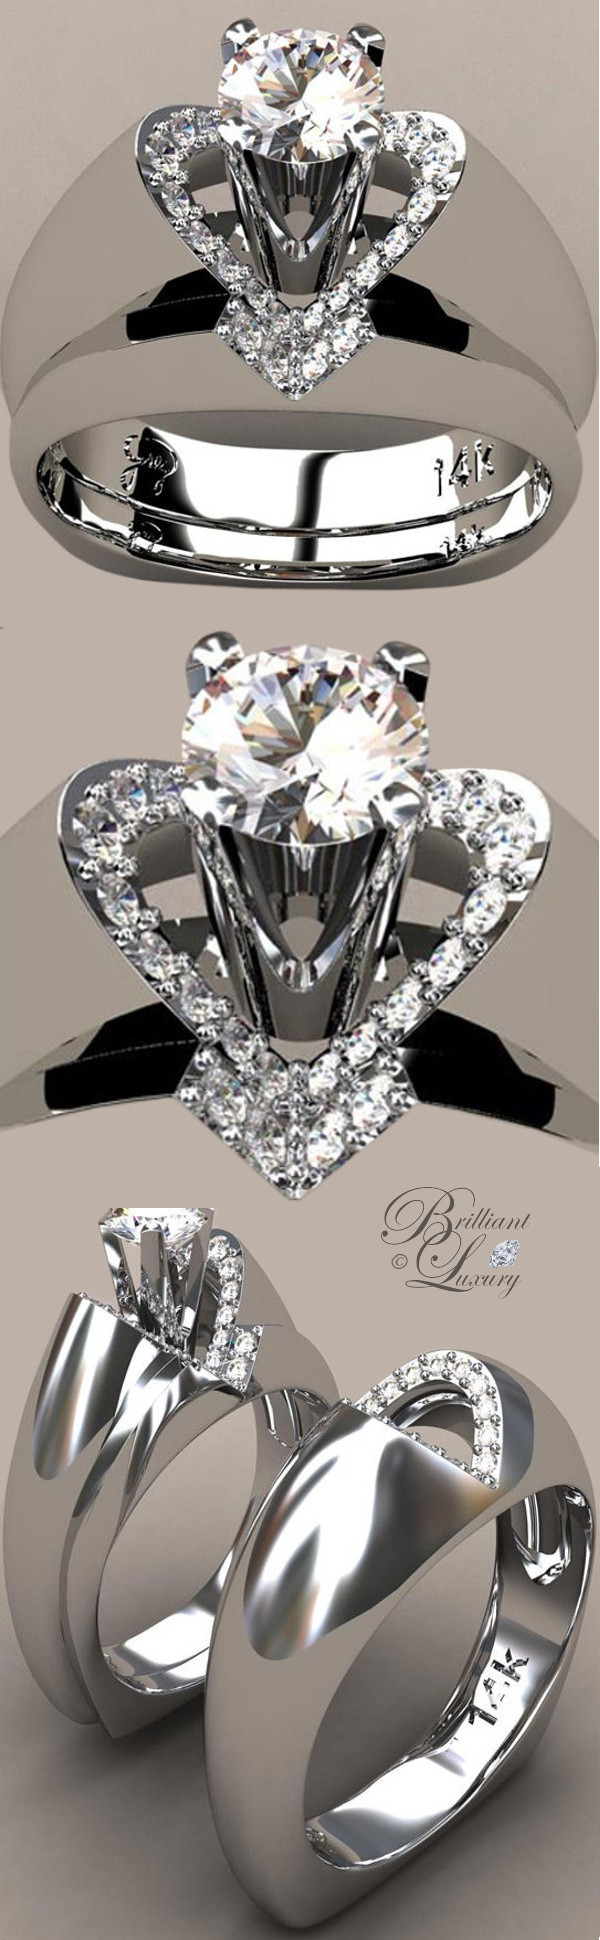 Greg Neeley Bridal Jewelry V Top Princess Wedding Rings